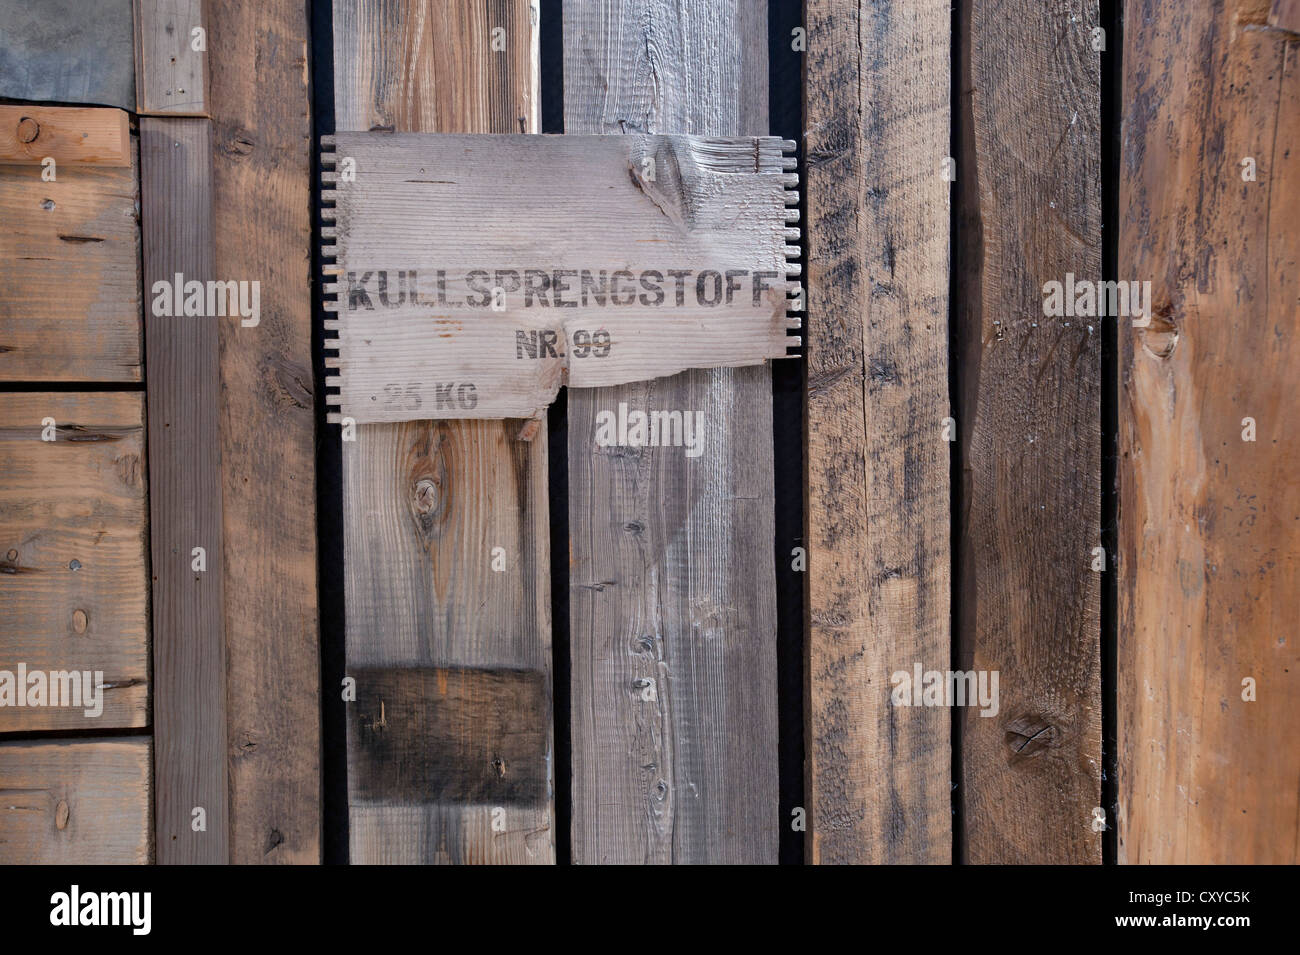 Old wooden planks, part of an explosives' crate, wall decorations, Basecamp Trapper's Hotel, Longyearbyen, - Stock Image